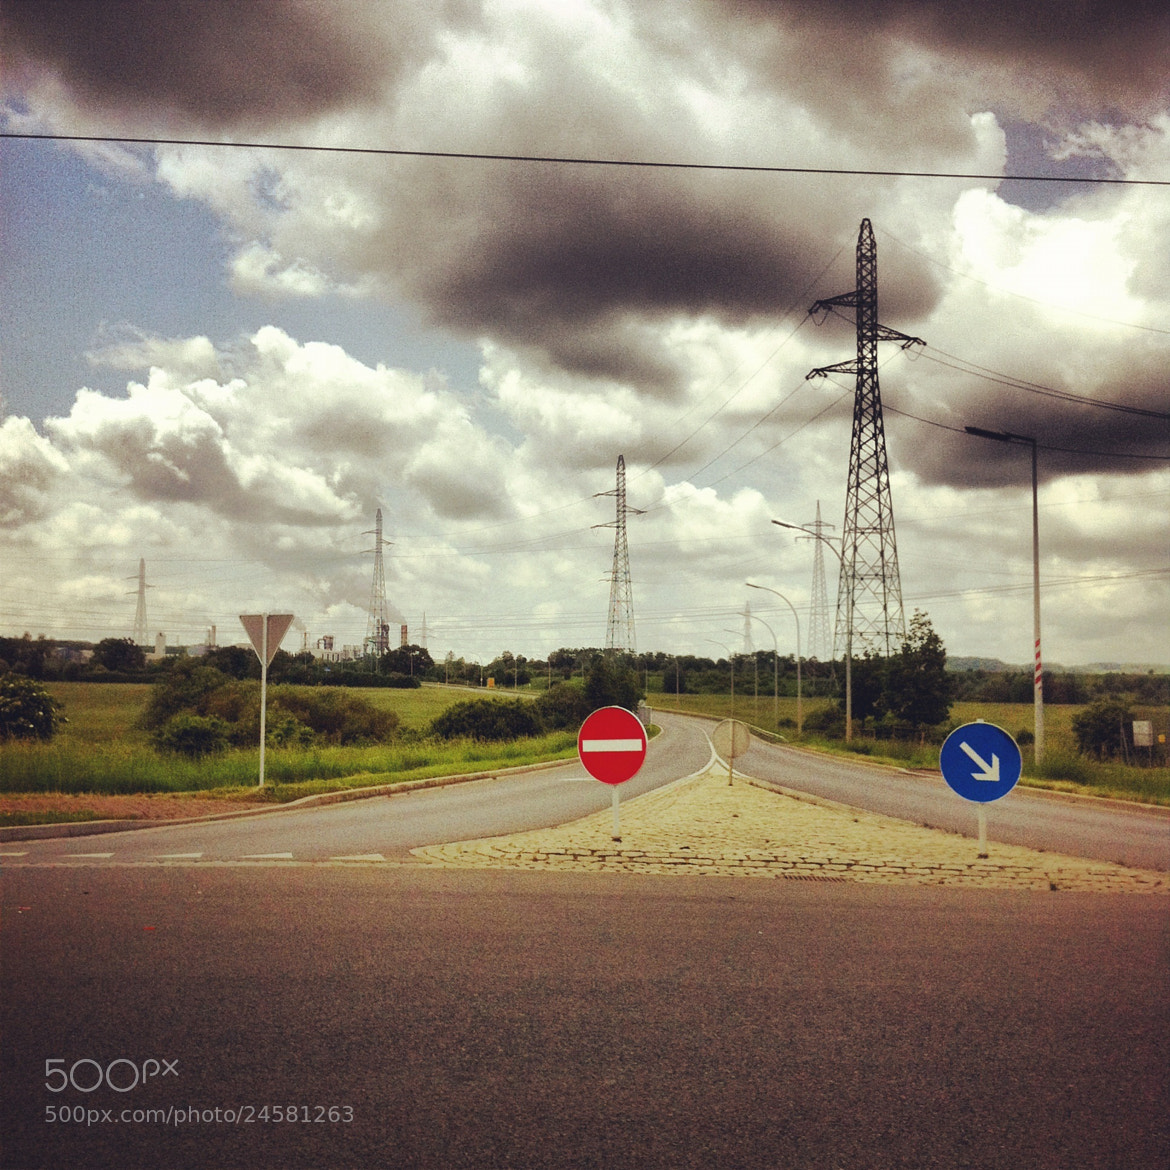 Photograph At the Roundabout by Amanda Surbey on 500px